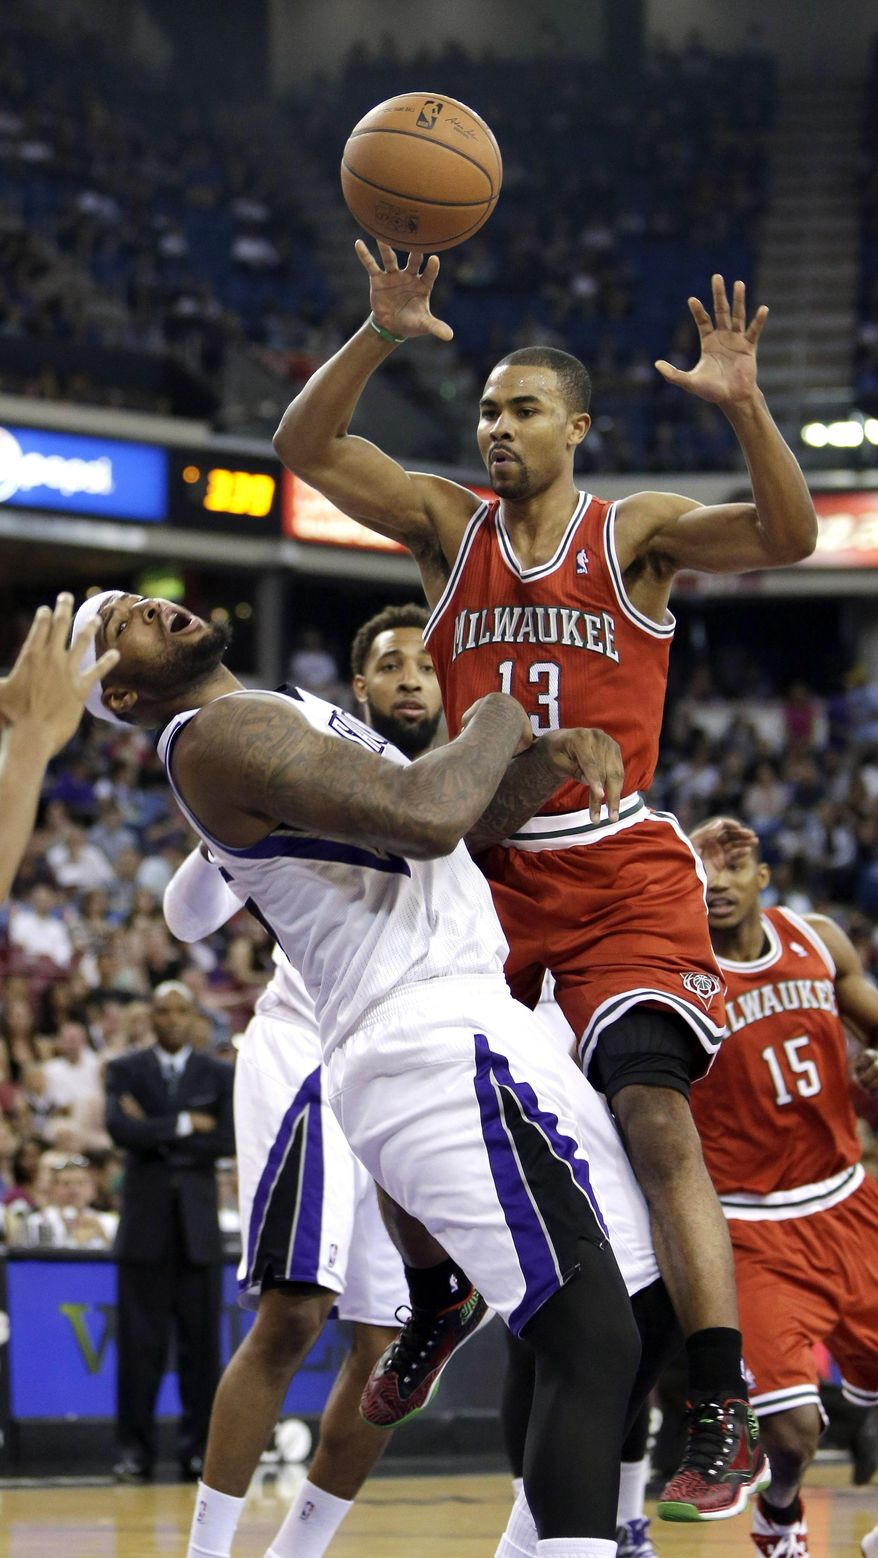 Sacramento Kings center DeMarcus Cousins, left, draws a charging foul against Milwaukee Bucks guard Ramon Sessions during the first quarter of an NBA basketball game in Sacramento, Calif., Sunday, March 23, 2014. (AP Photo/Rich Pedroncelli)